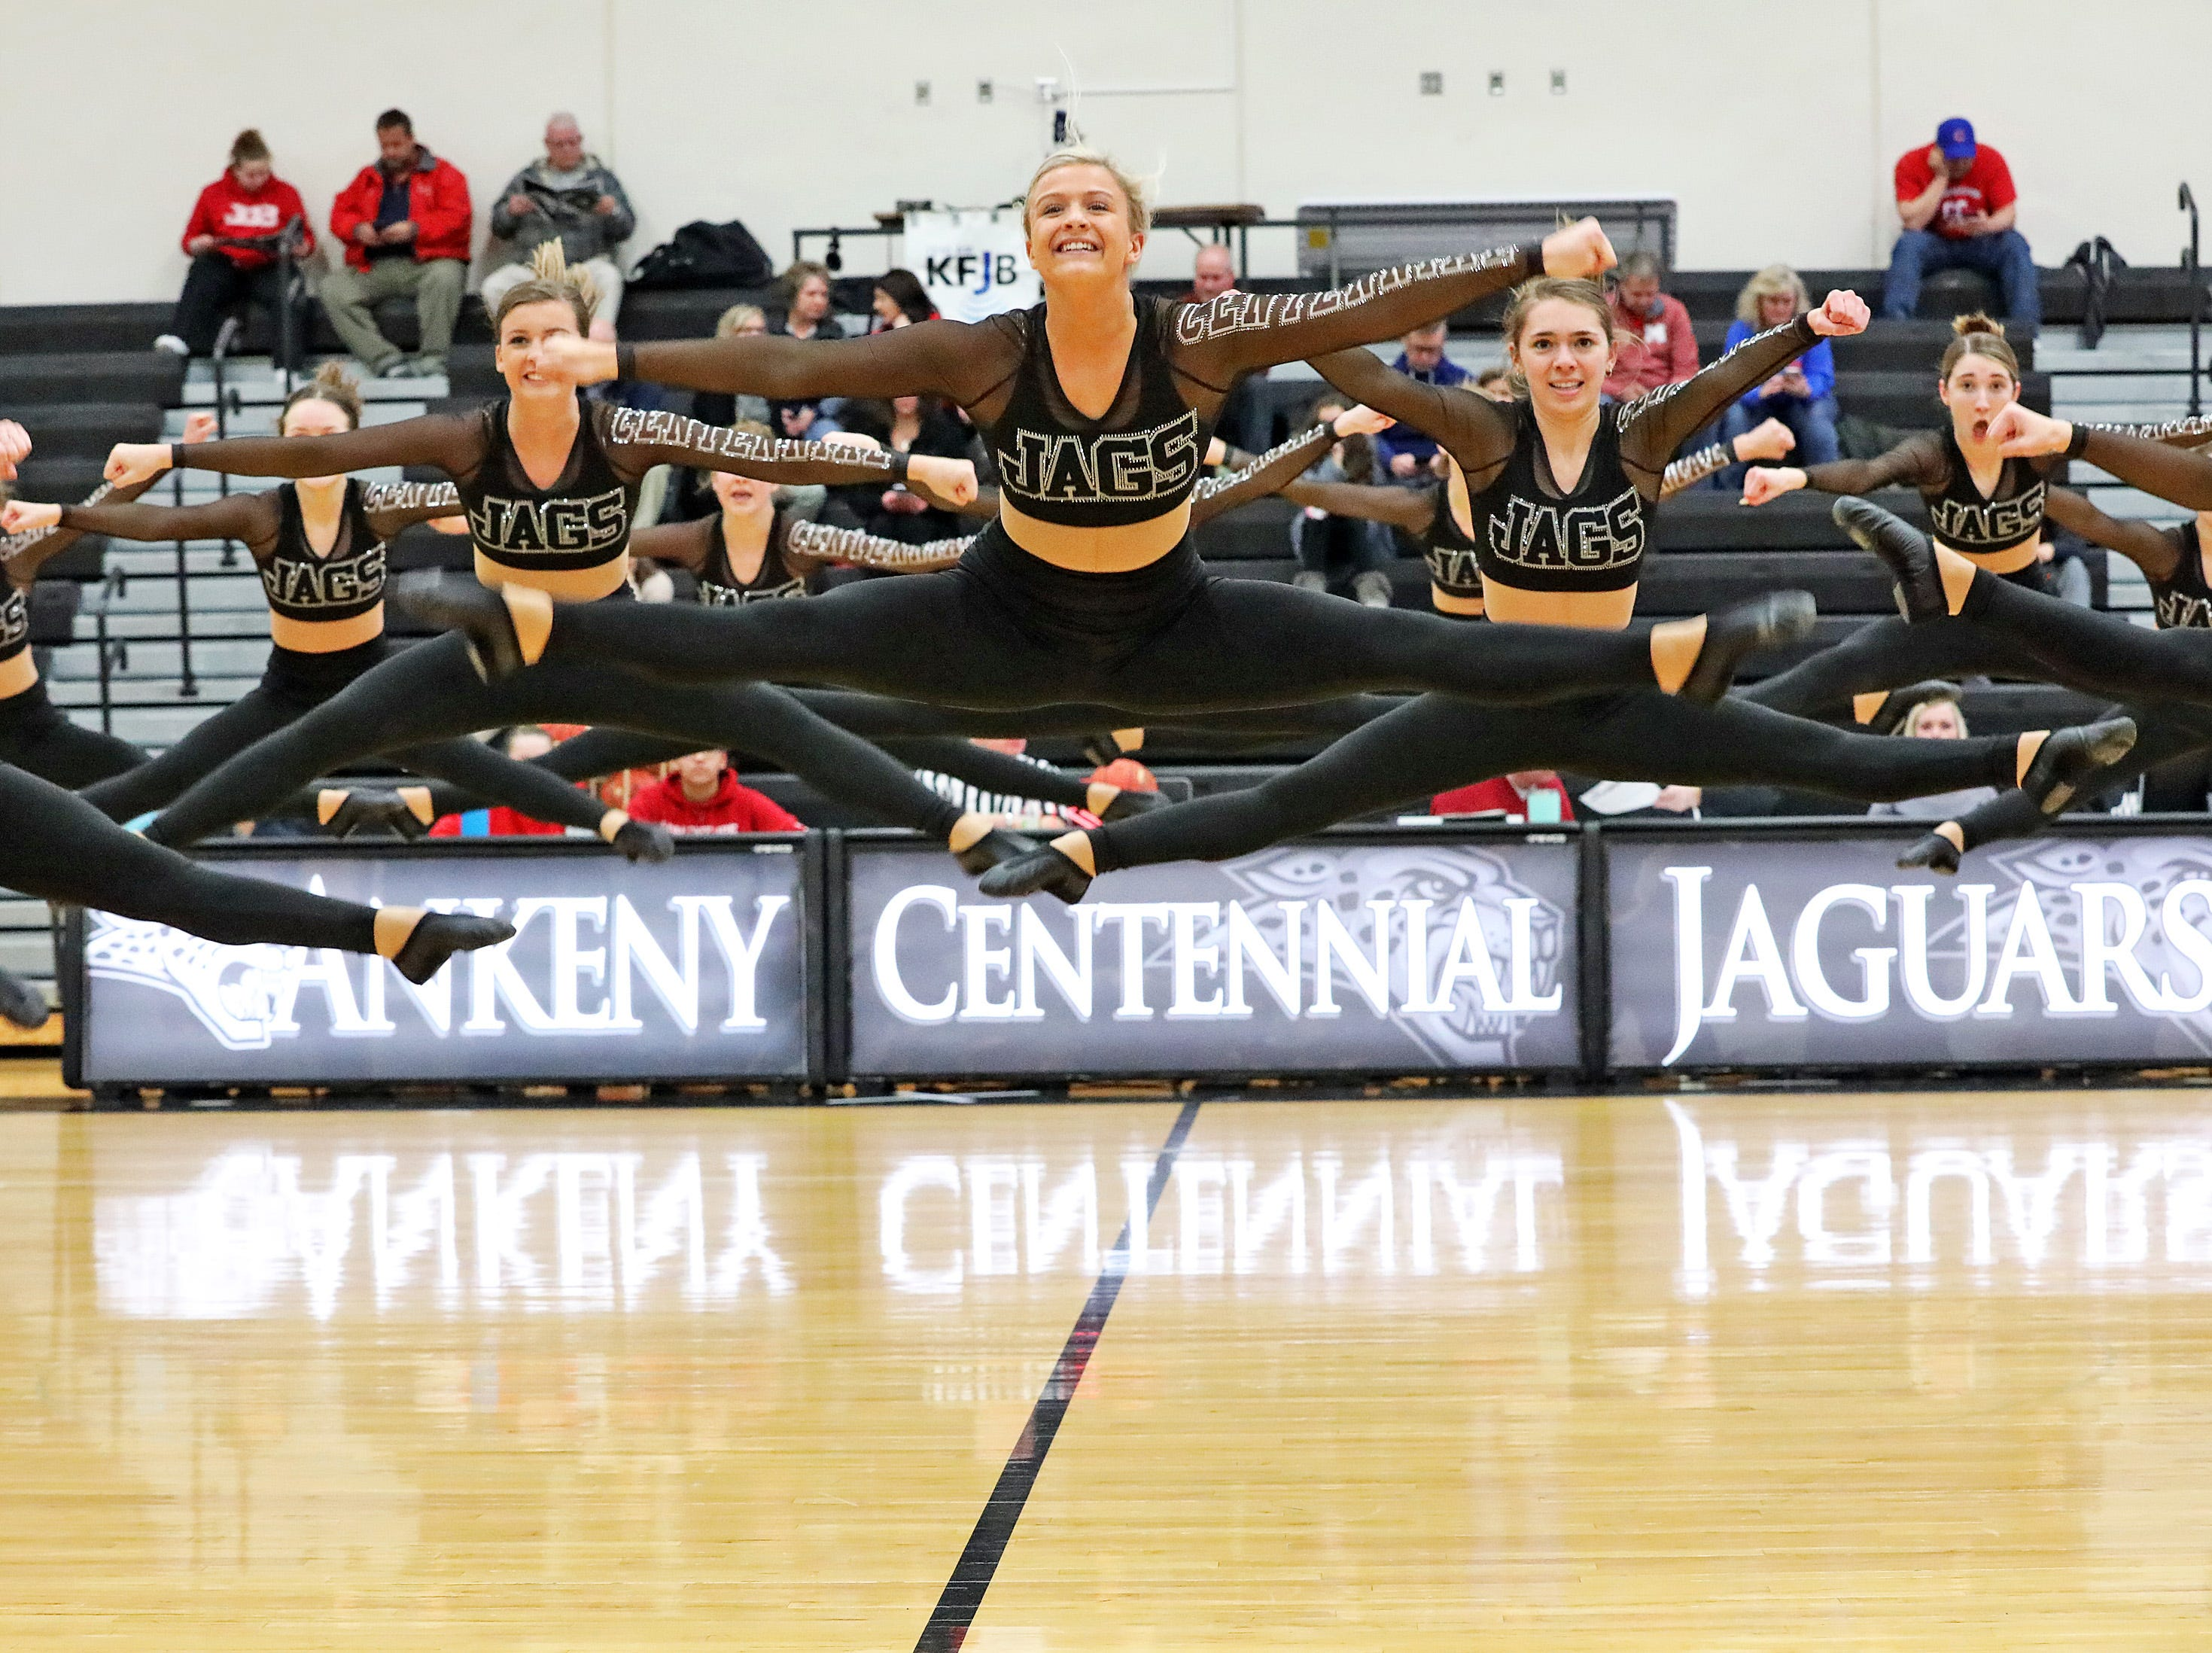 The half-time show featured the Ankeny Centennial Dance Team, which is the defending National Champions in the Pom Division at the National Dance Alliance Championships held in Orlando, Florida.